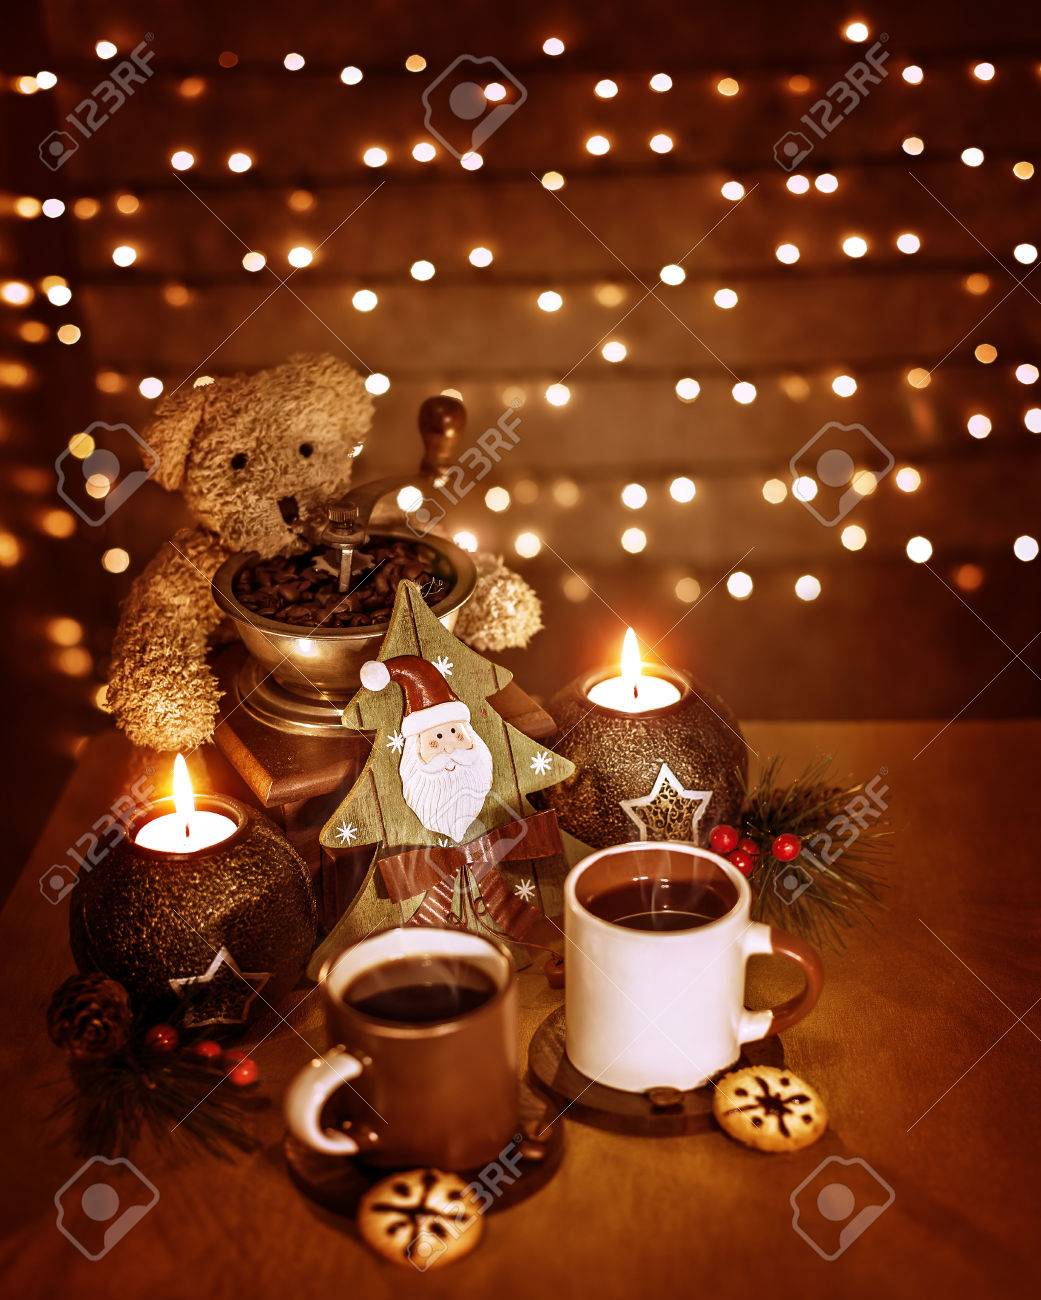 Elegant Christmastime Decoration, Beautiful Festive Still Life On The Table On  Glowing Wall Background, Cups